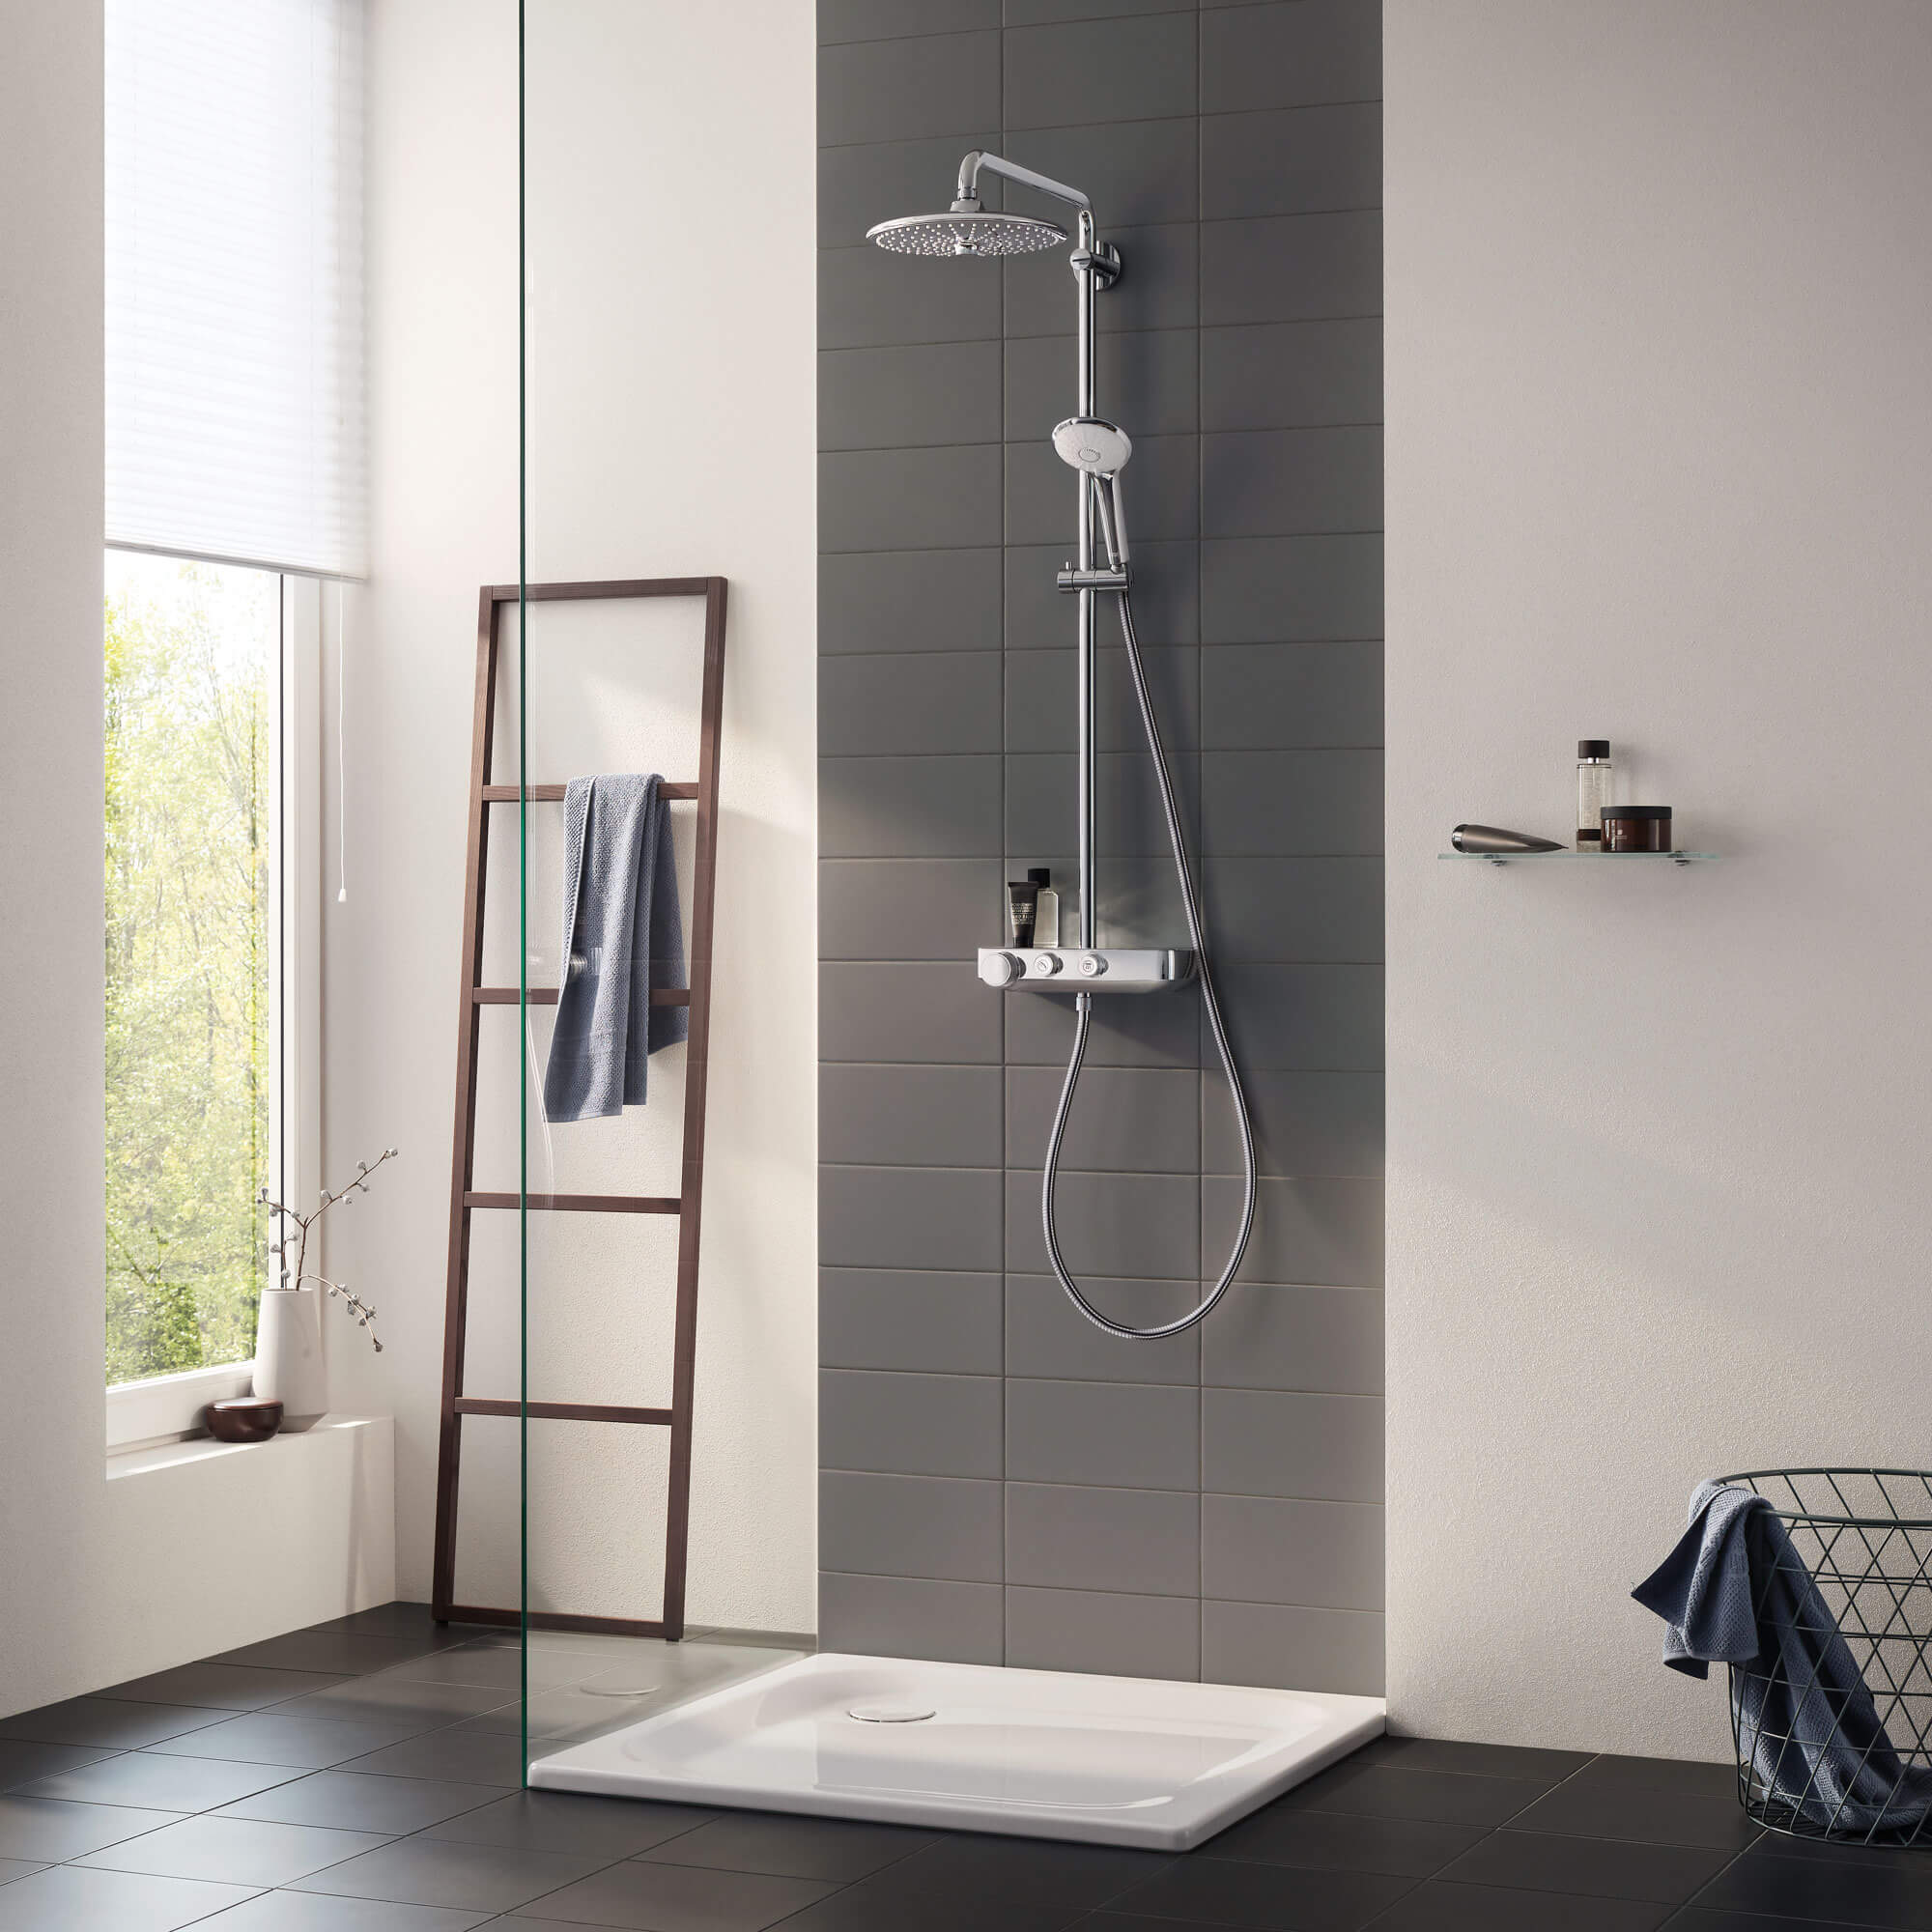 Euphoria smartcontrol shower displayed in a grey toned bathroom.